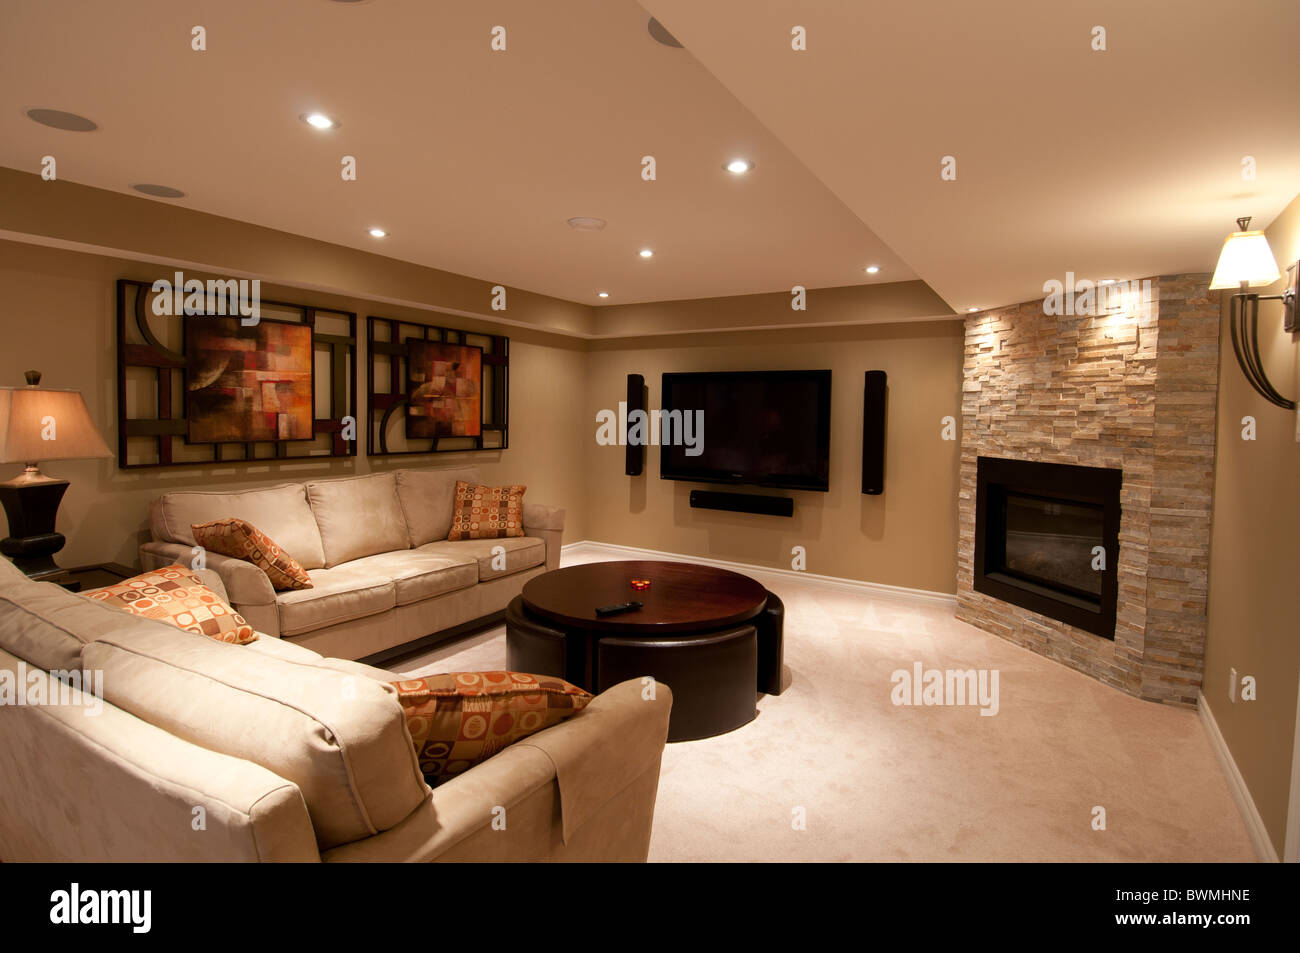 Basement Fireplace Ideas Basement In Luxury Residential Home With Fireplace And